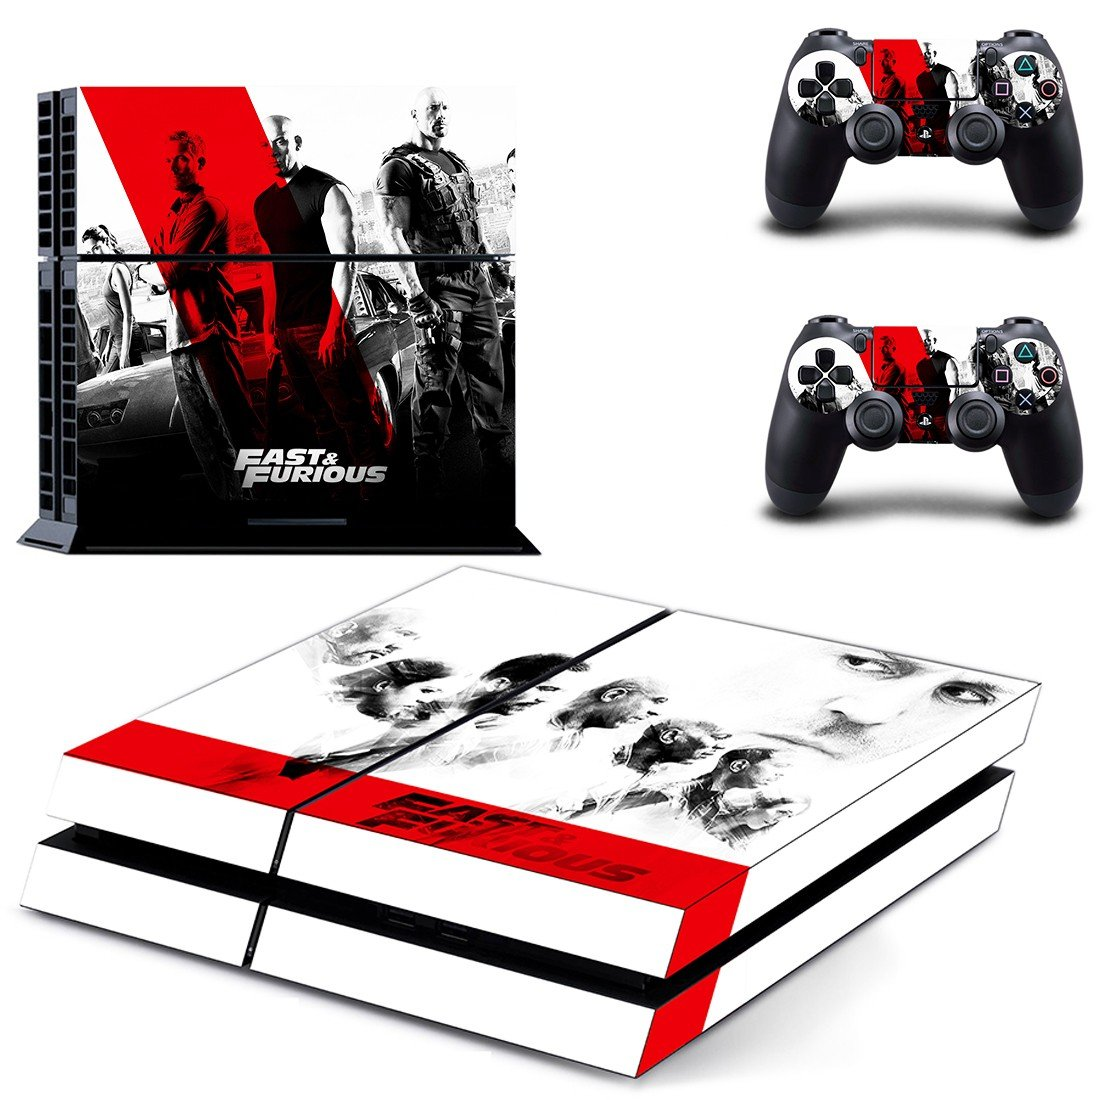 Fast & Furious skin decal for ps4 console and controllers